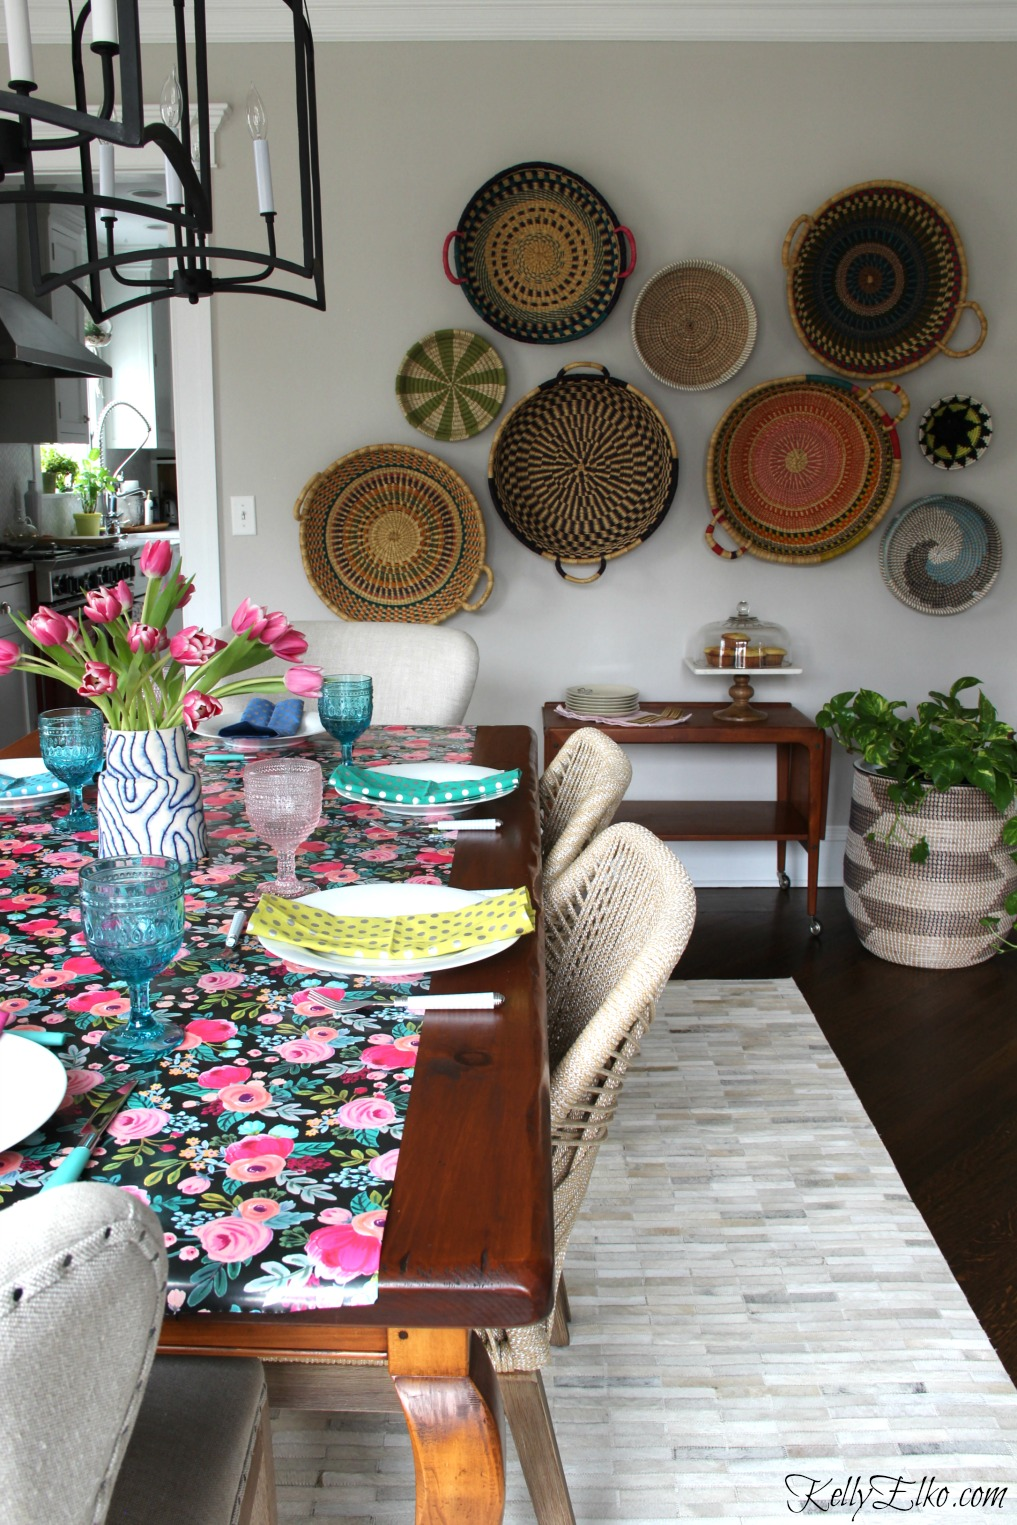 Spring Tablescape - love the floral table runner, pink and blue glasses and basket gallery wall kellyelko.com